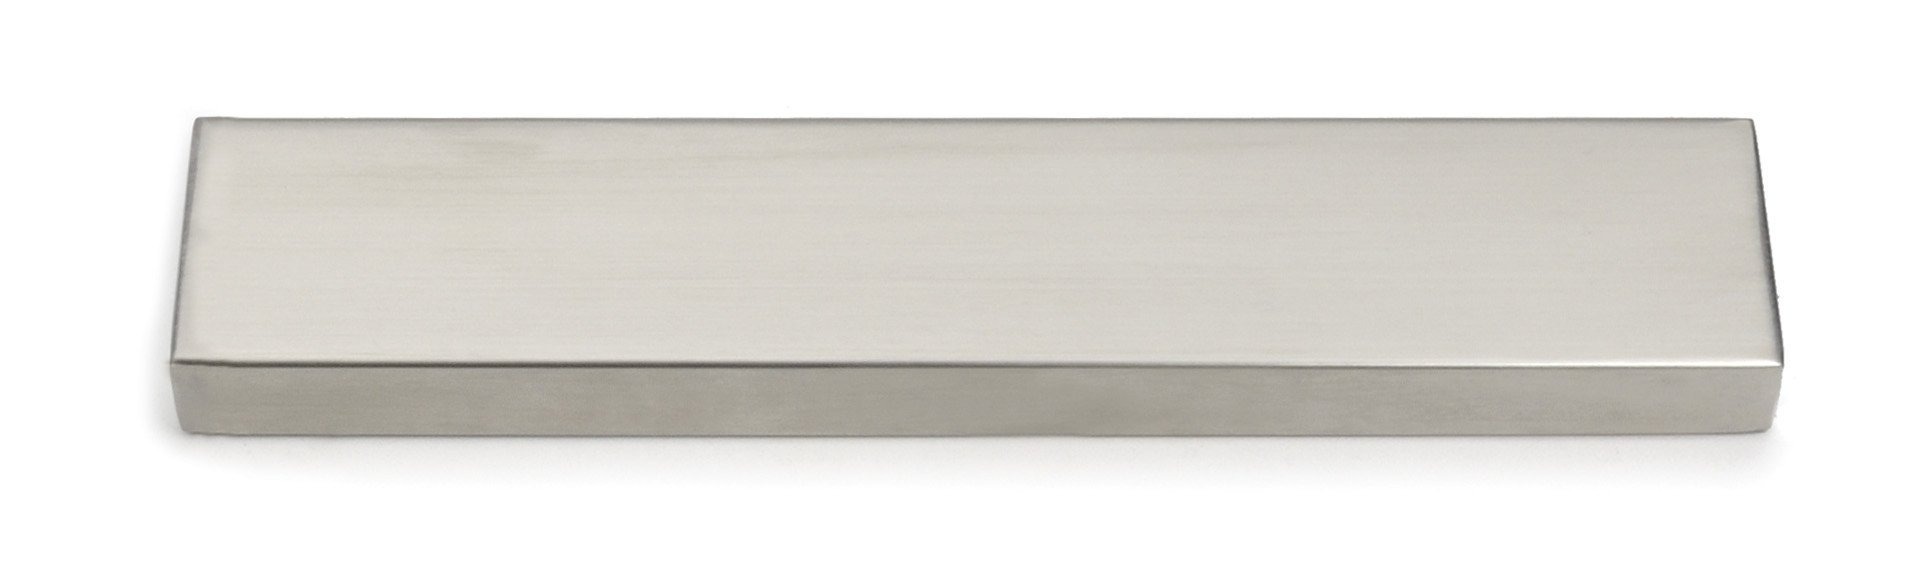 RSVP Endurance 18/8 Stainless Steel Deluxe Magnetic Knife Bar, 10-inches